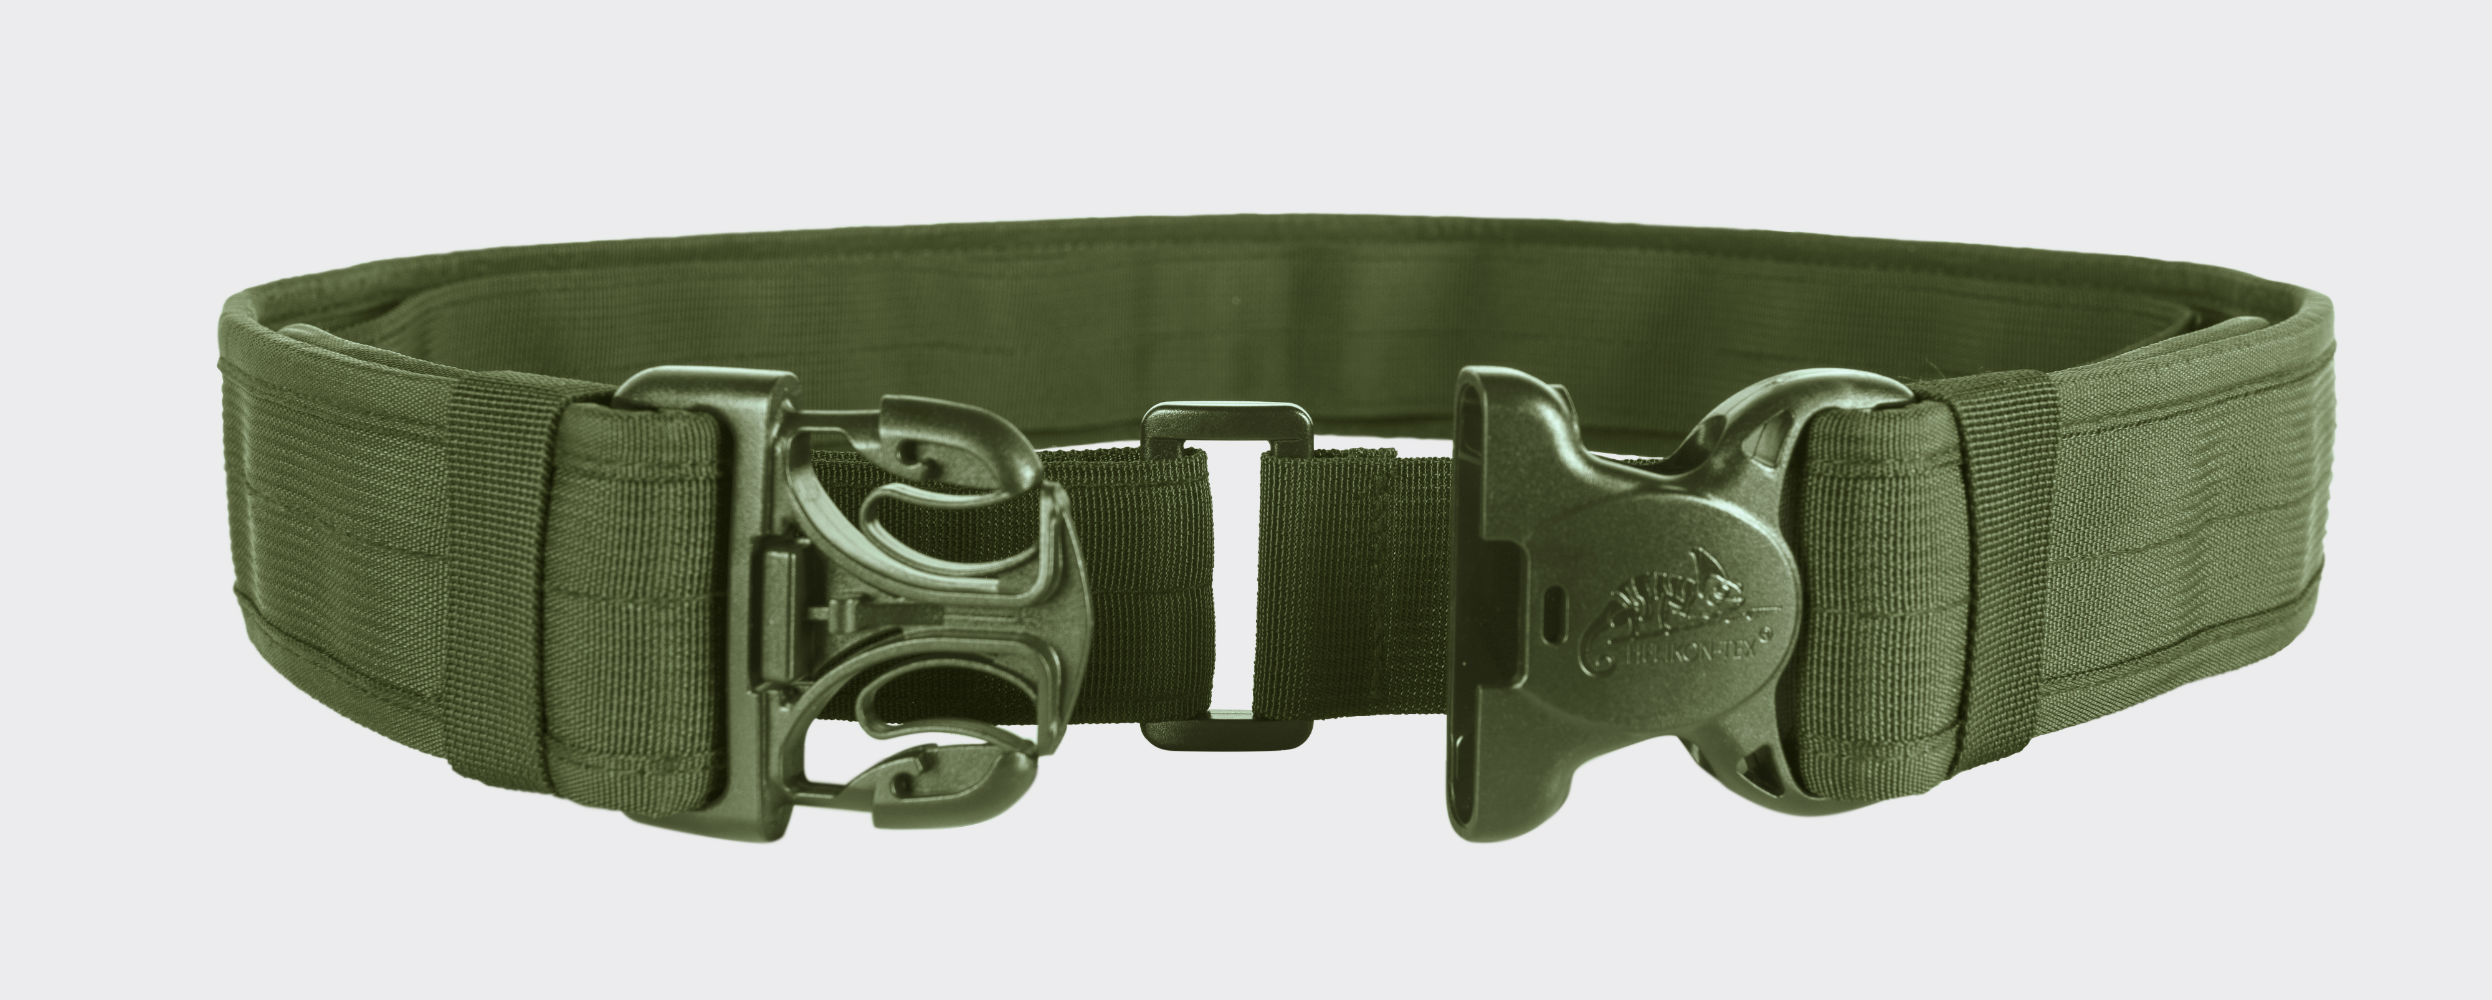 Helikon-Tex DEFENDER Security Belt Gürtel OLIVE GREEN PS-DEF-NL-02.